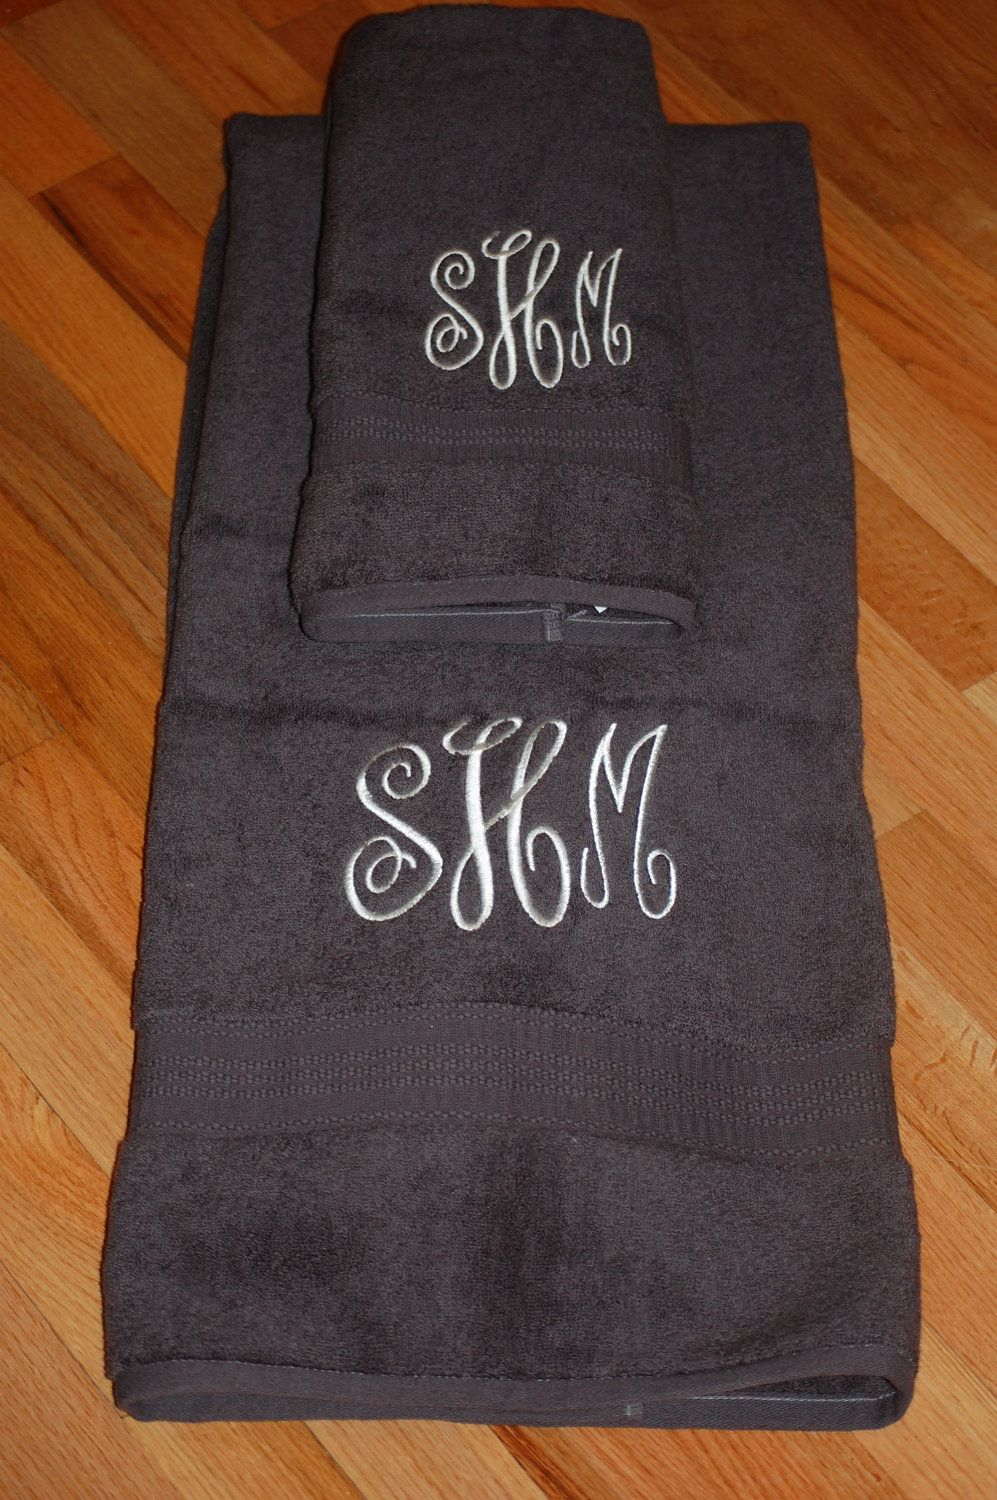 Monogrammed Towel And Handtowel Girly Girls Pinterest - Personalized bath towels for small bathroom ideas